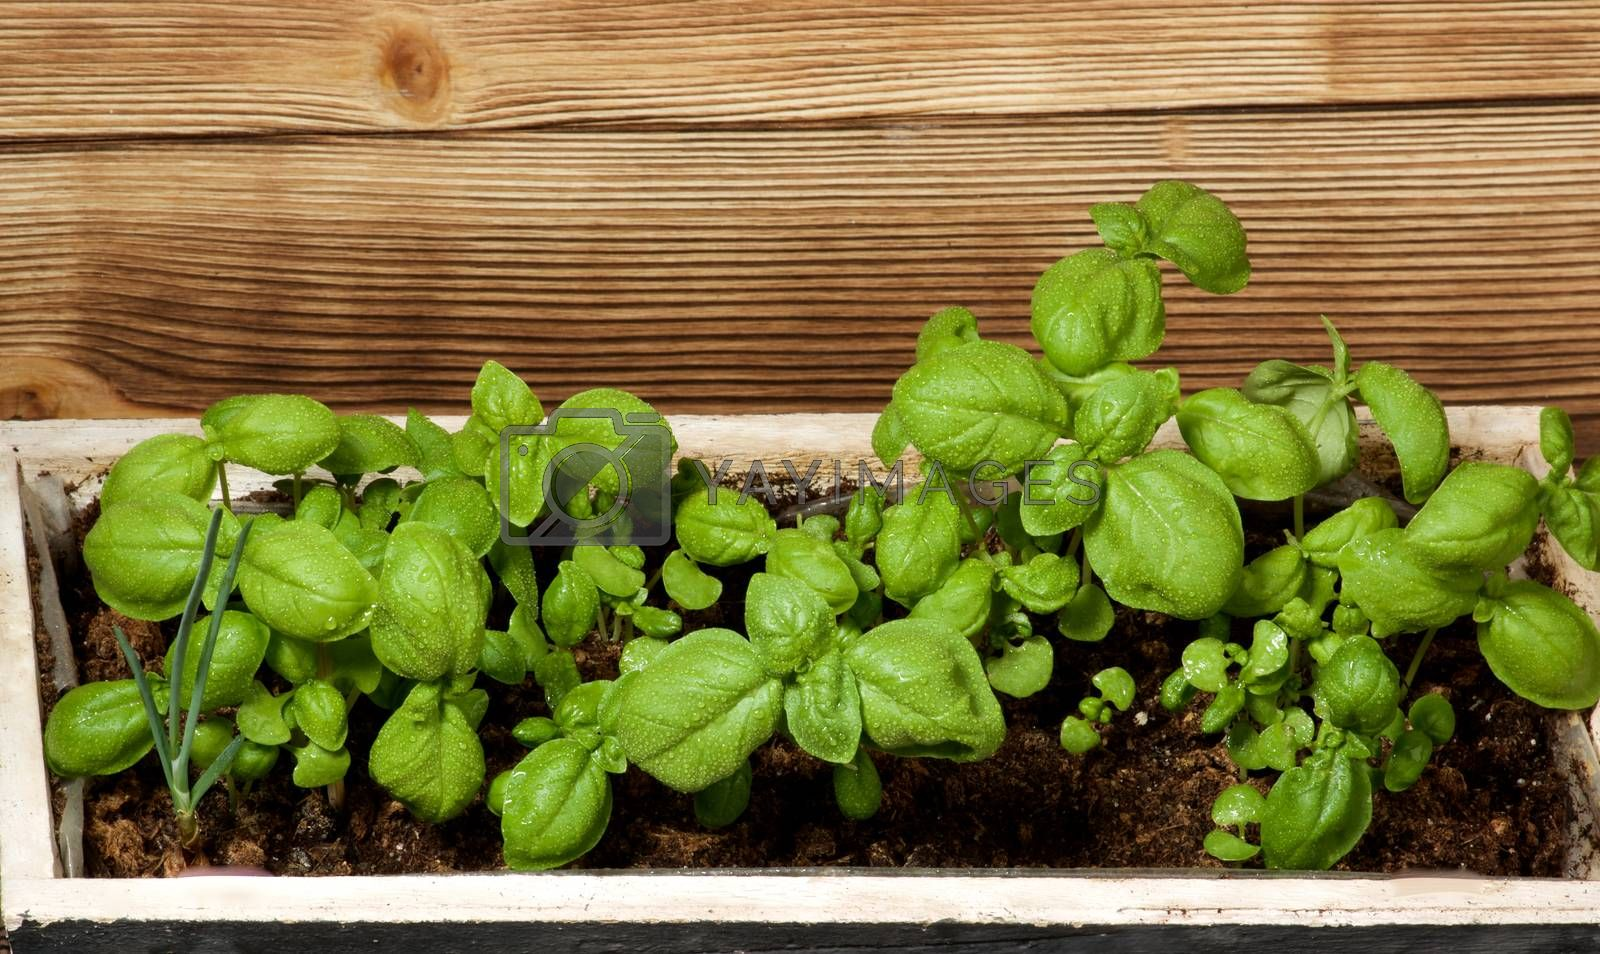 Small Lush Foliage Fresh Green Basil with Water Drops in Wooden Box closeup on Wooden background